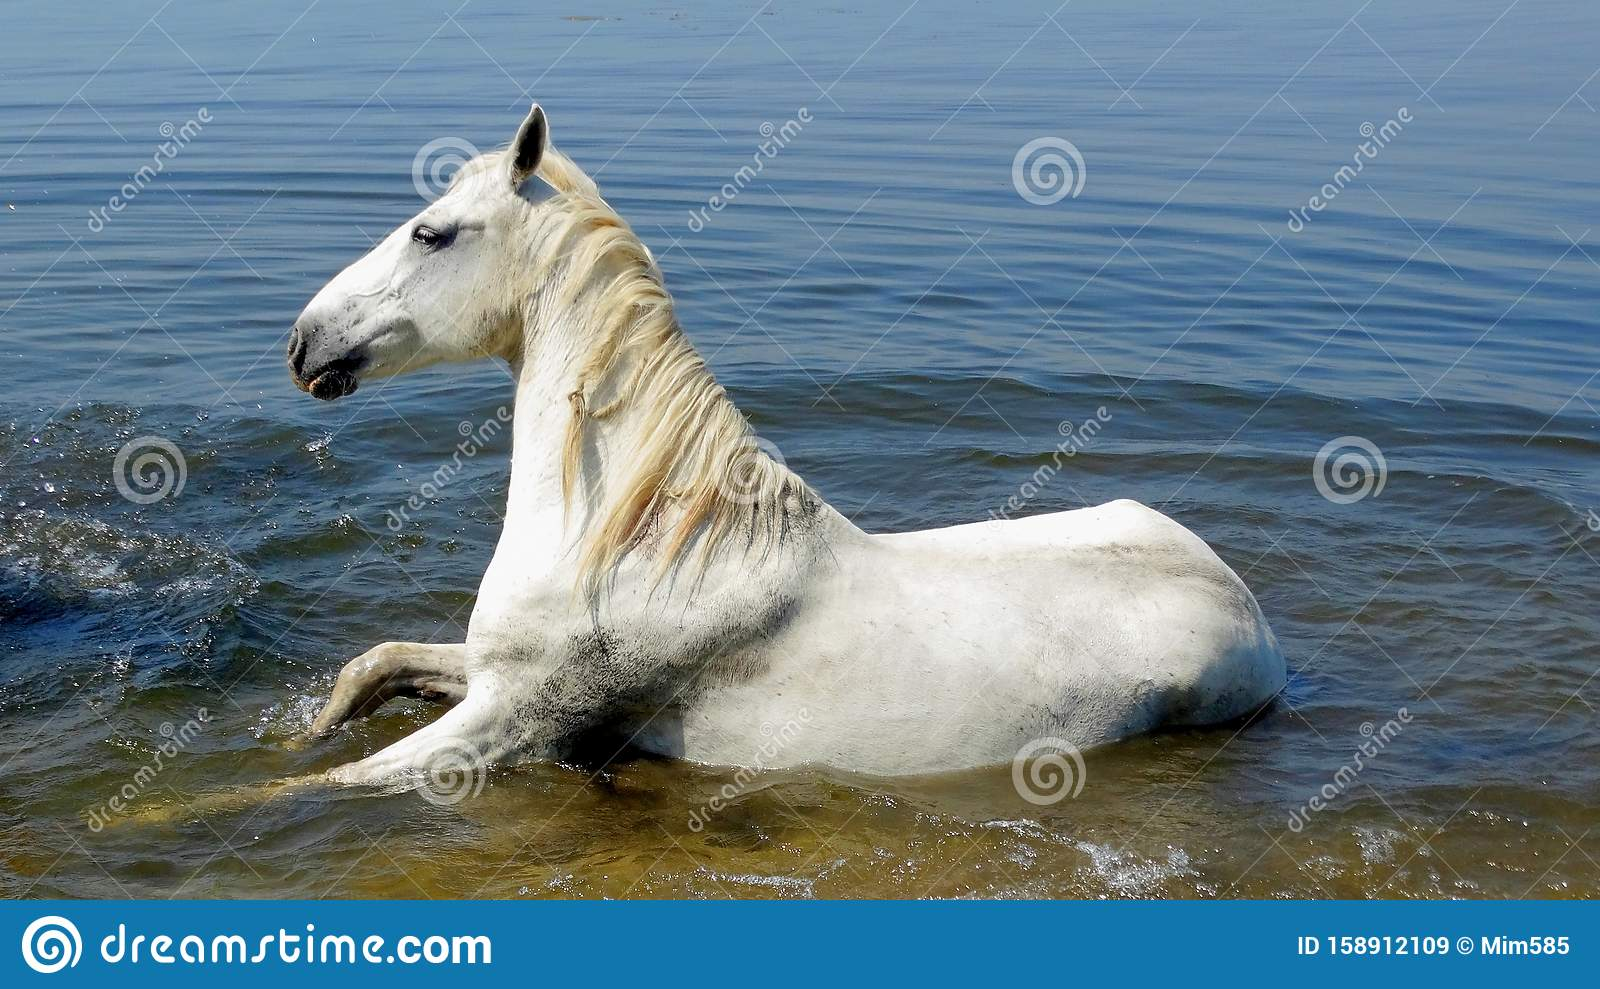 A Beautiful White Horse Lies In The Water Stock Image Image Of Waves Europe 158912109